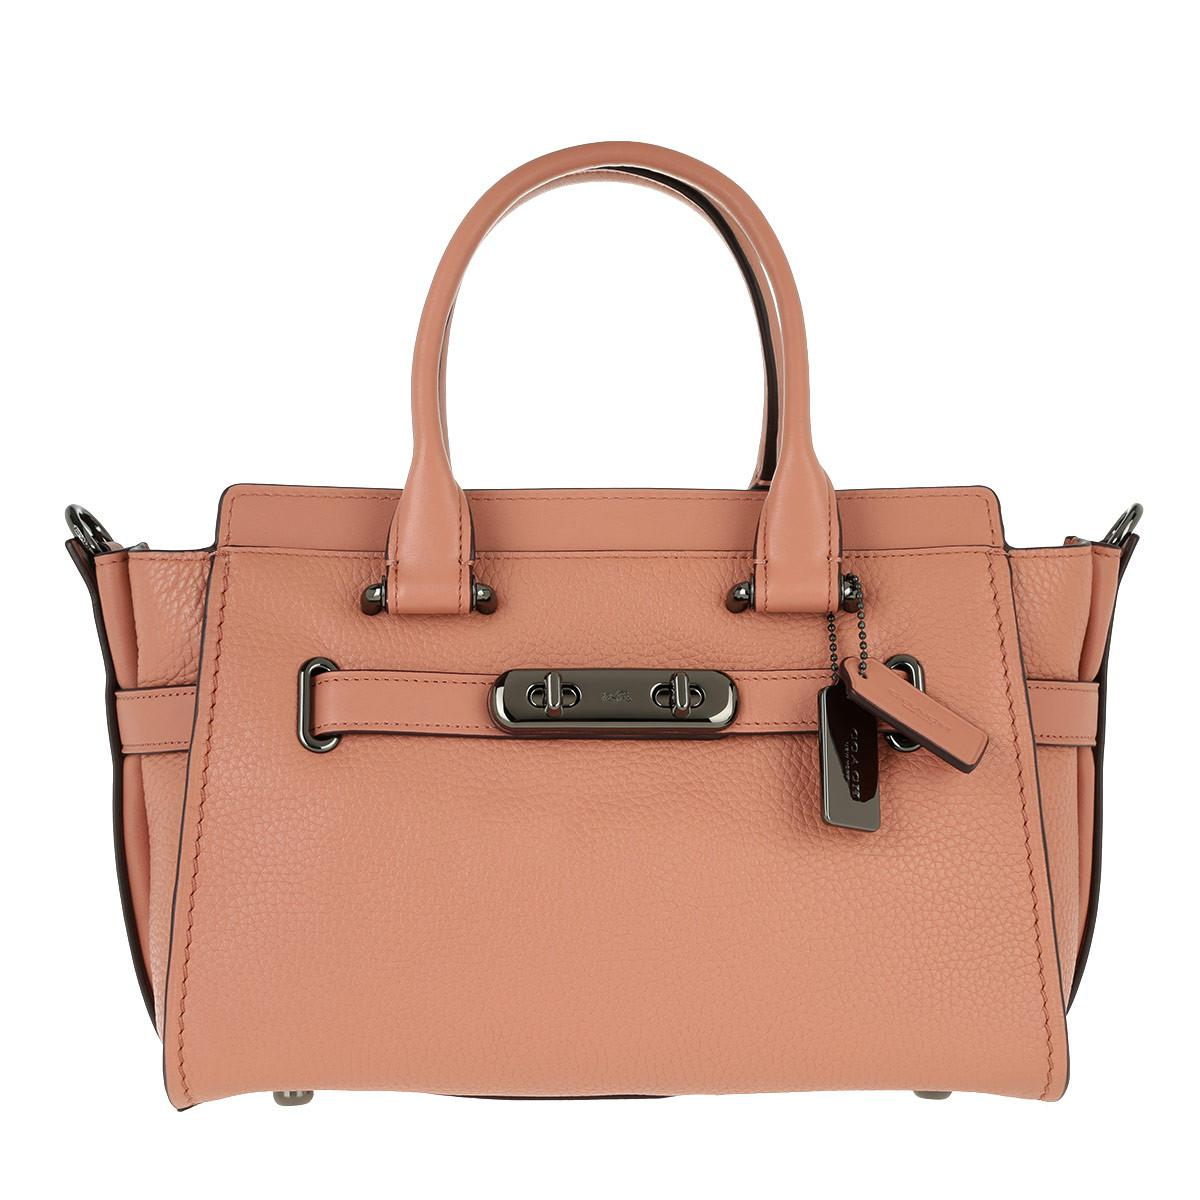 2455d9826687 COACH Swagger 27 Leather Tote Melon - Lyst